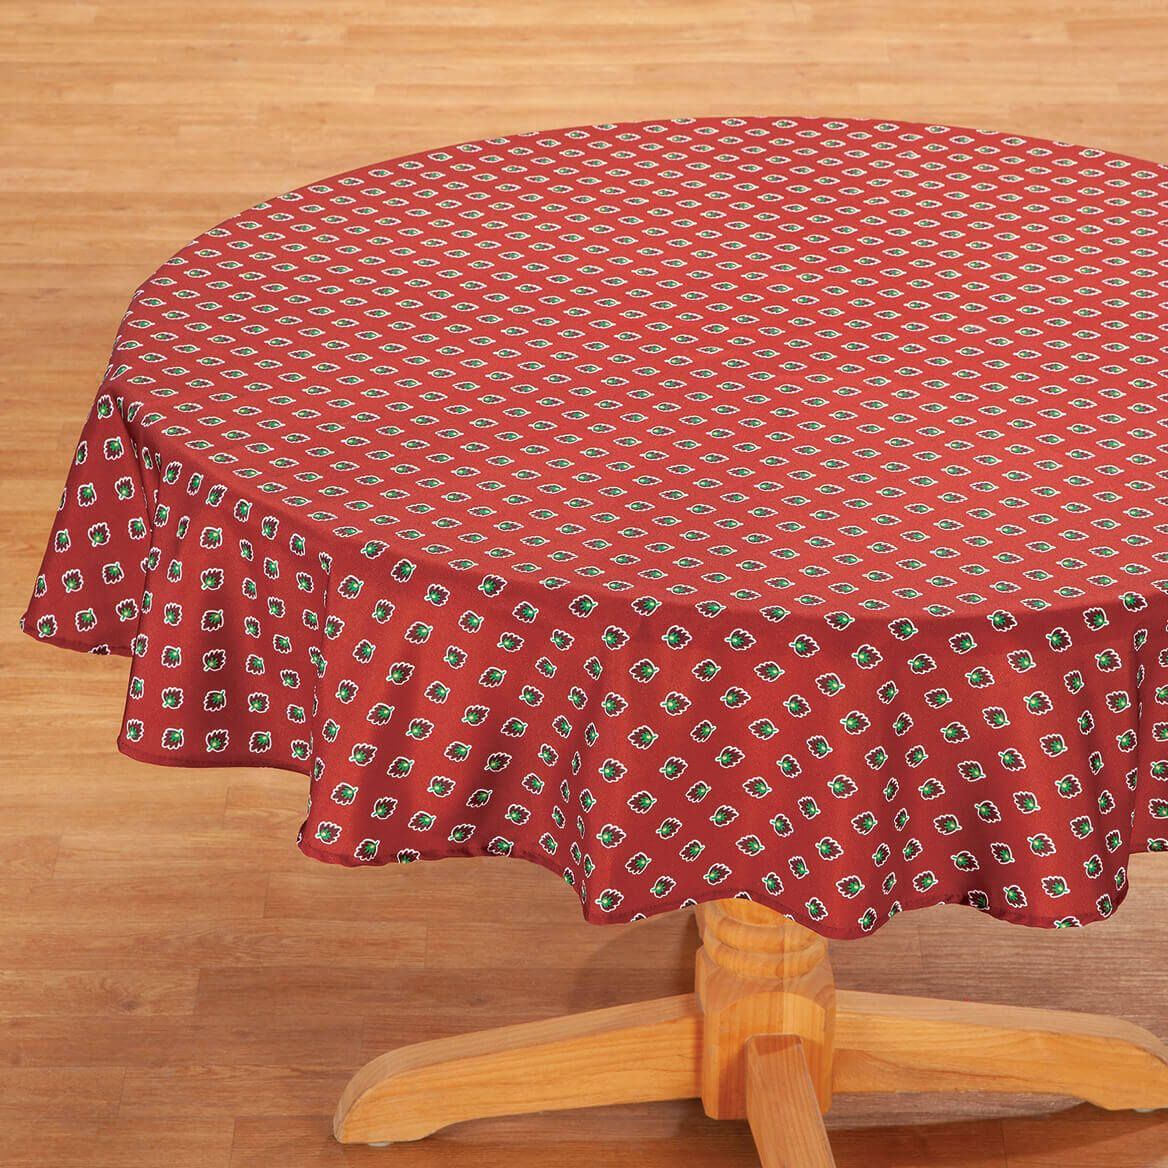 Foulard Tablecloth by William Roberts-368999